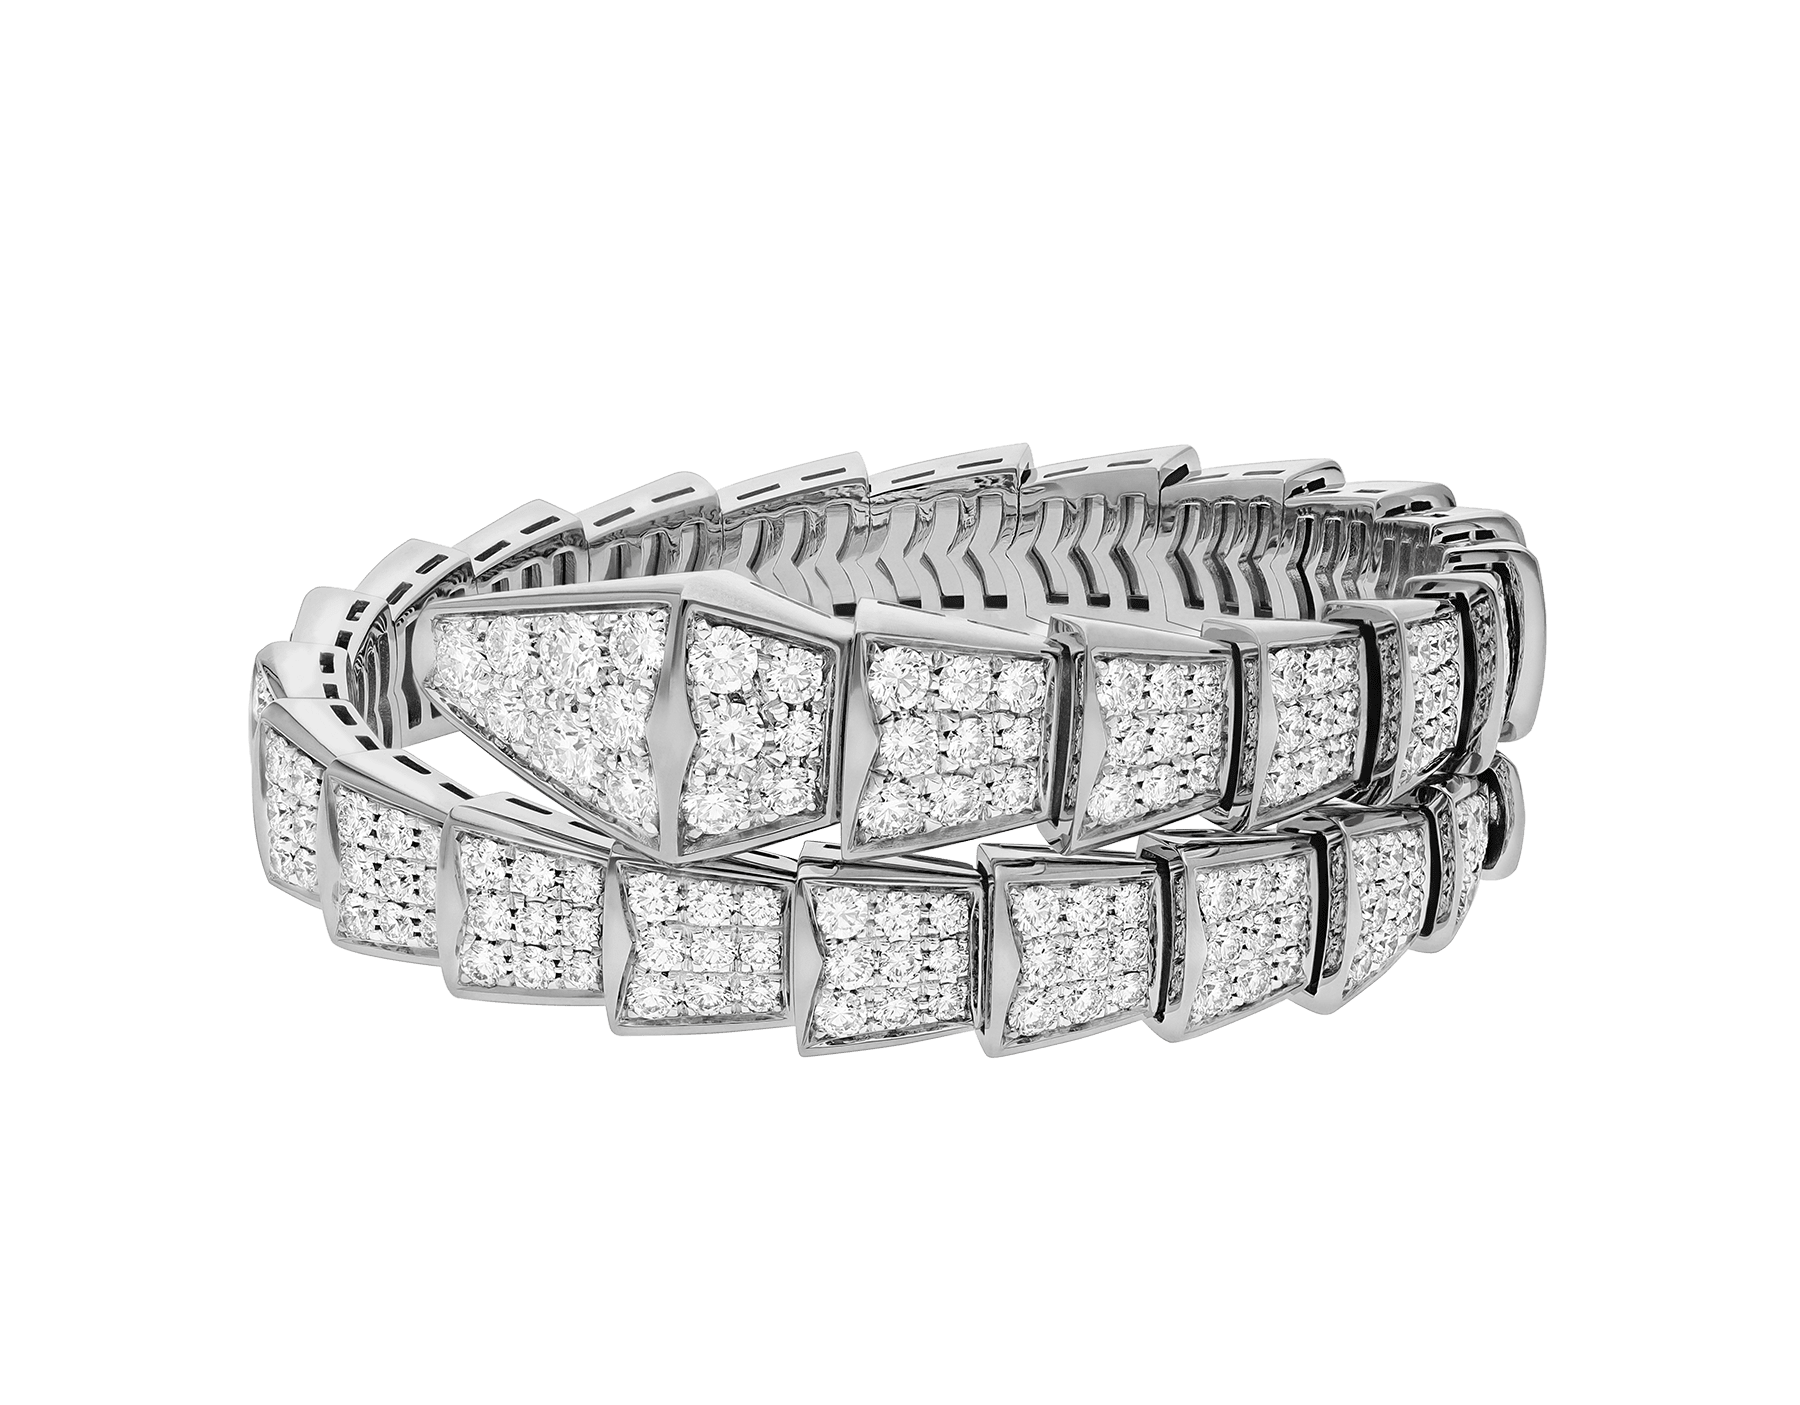 Serpenti one-coil bracelet in 18 kt white gold, set with full pavé diamonds. BR855231 image 2